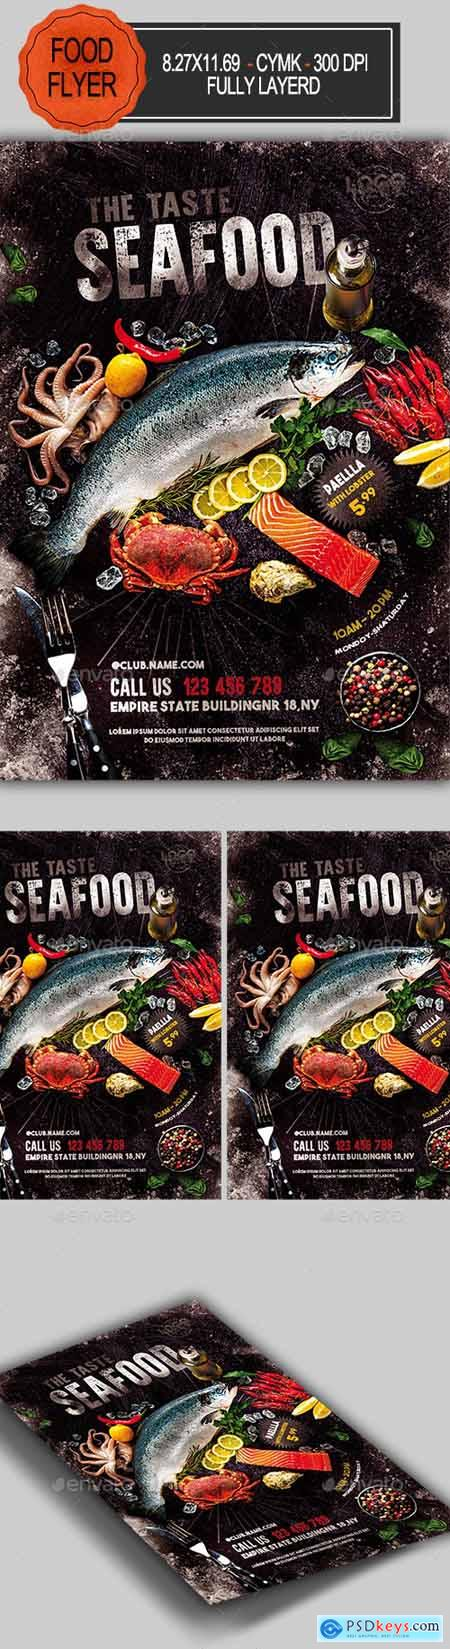 Seafood Flyer Template 23387444